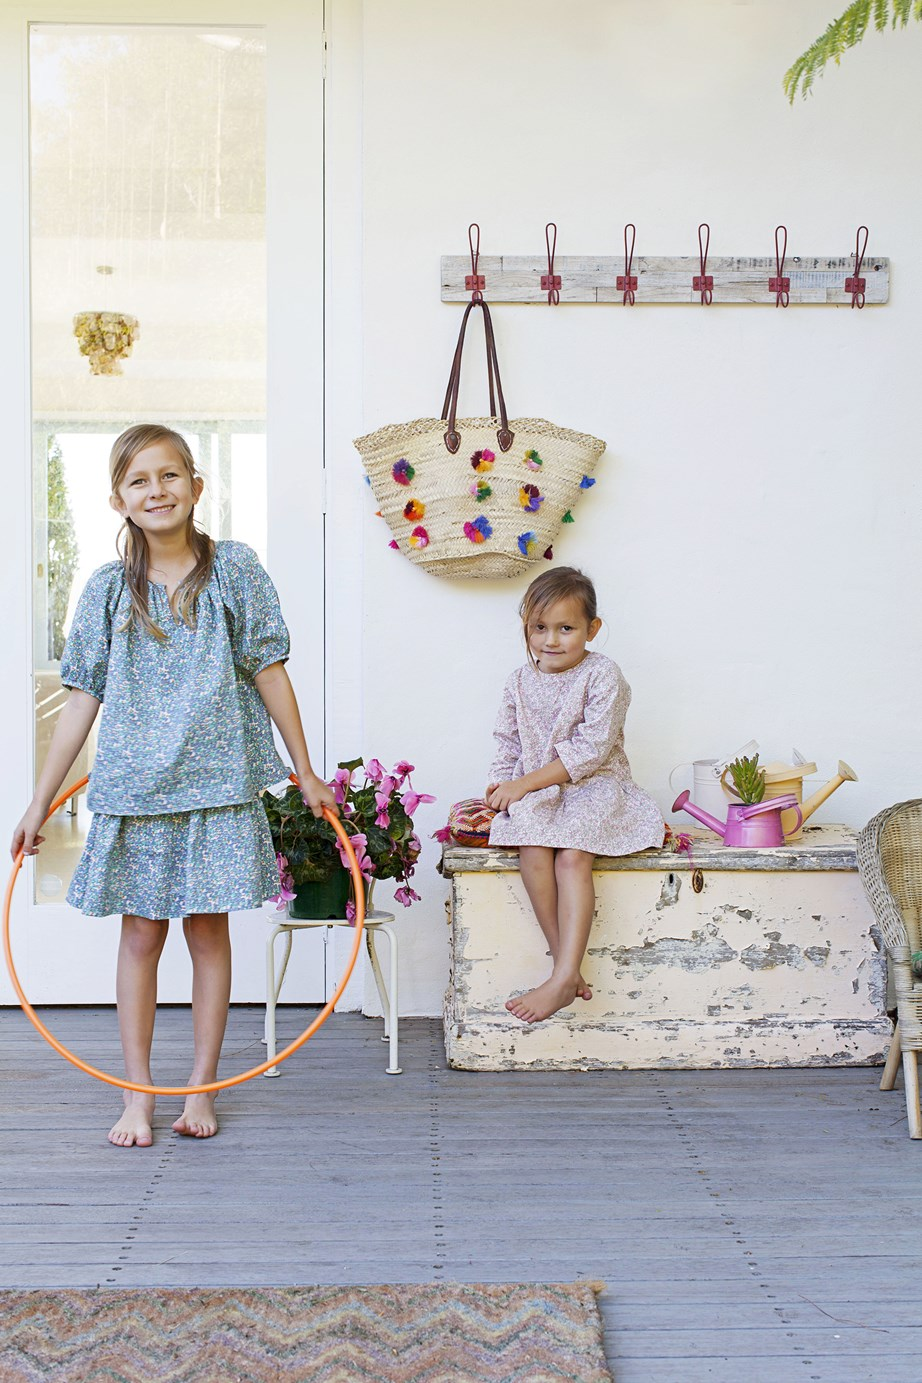 """If you don't have much of an arrival zone inside your home, consider creating your 'home entrance' at the threshold to your home. Hang hooks for beach bags and rain jackets, use a storage chest for shoes and style it up with a [decorative doormat](https://www.homestolove.com.au/9-decorative-doormats-5295